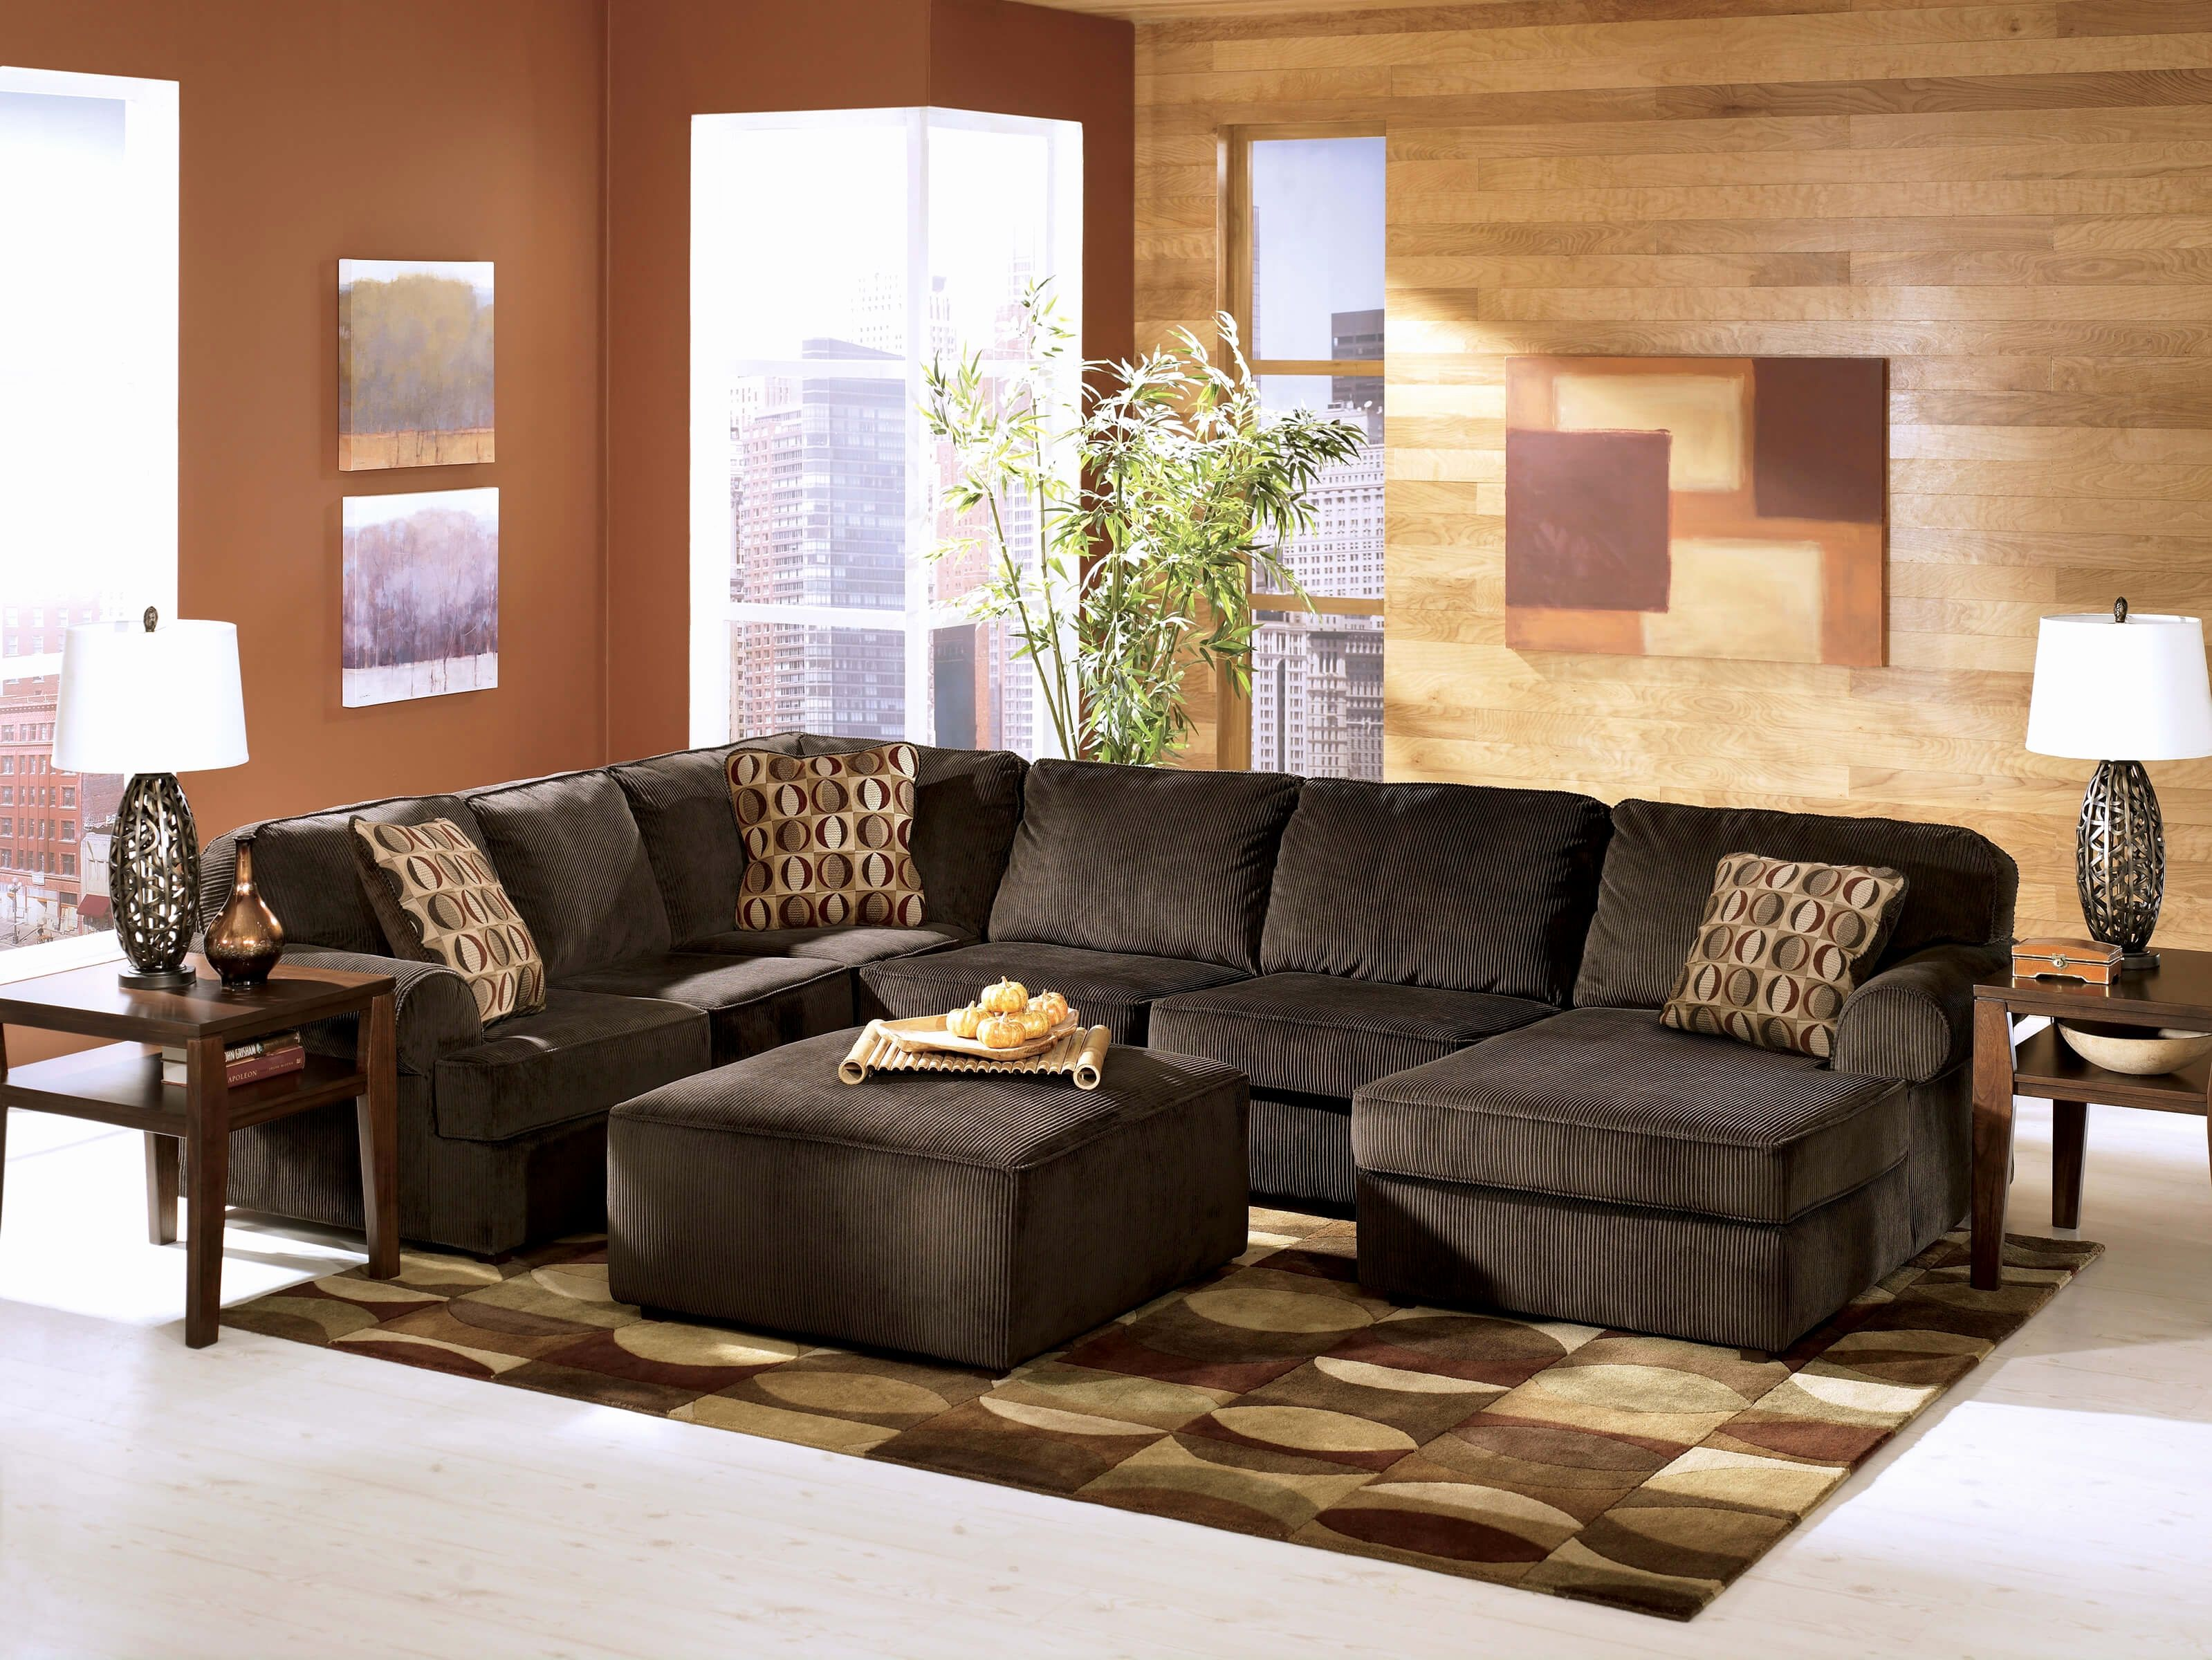 Elegant ashley Sectional sofas Pics vista chocolate ashley